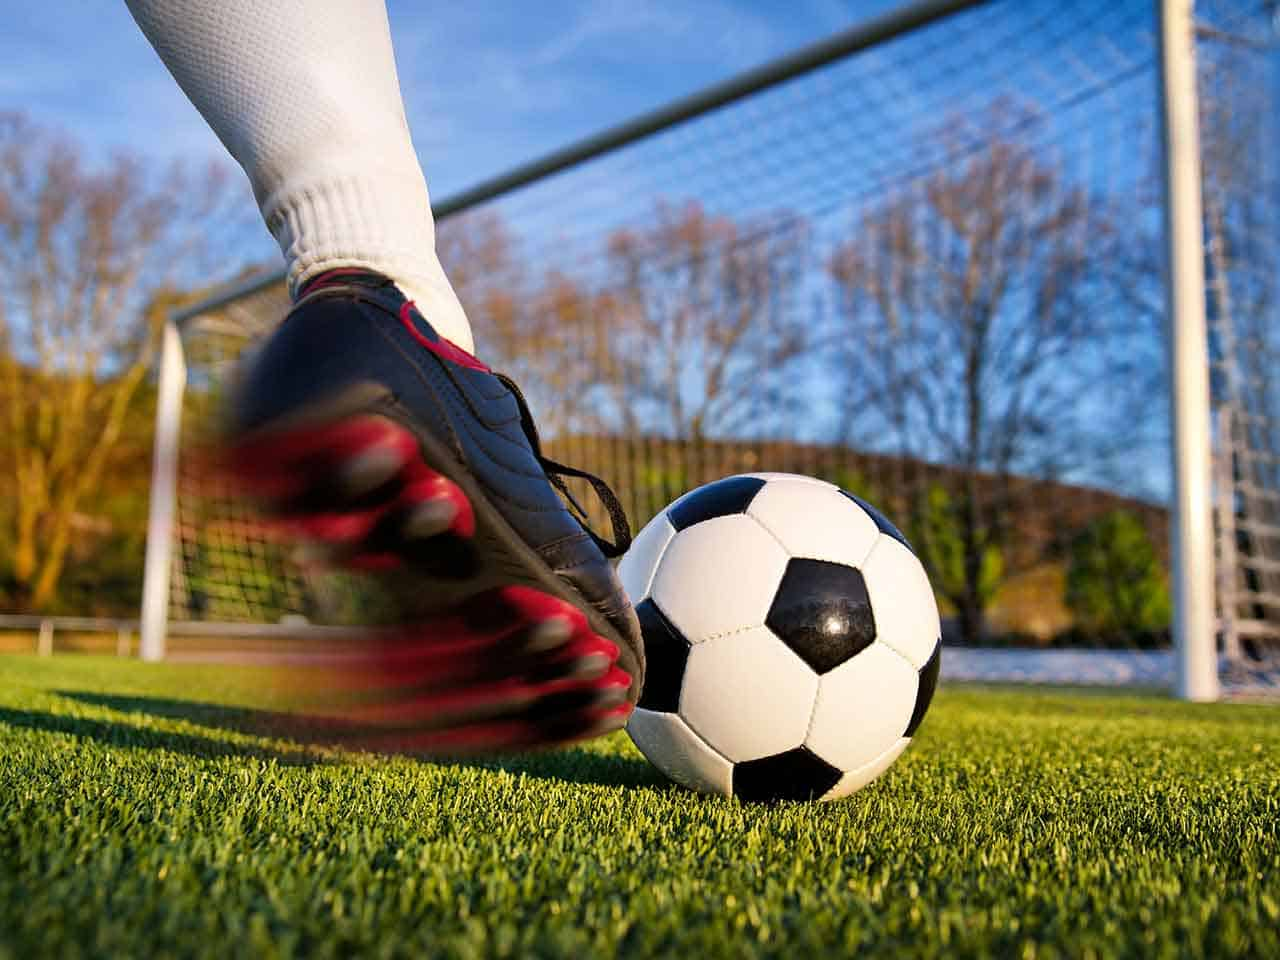 bayesian networks for unbiased assessment of referee bias in football